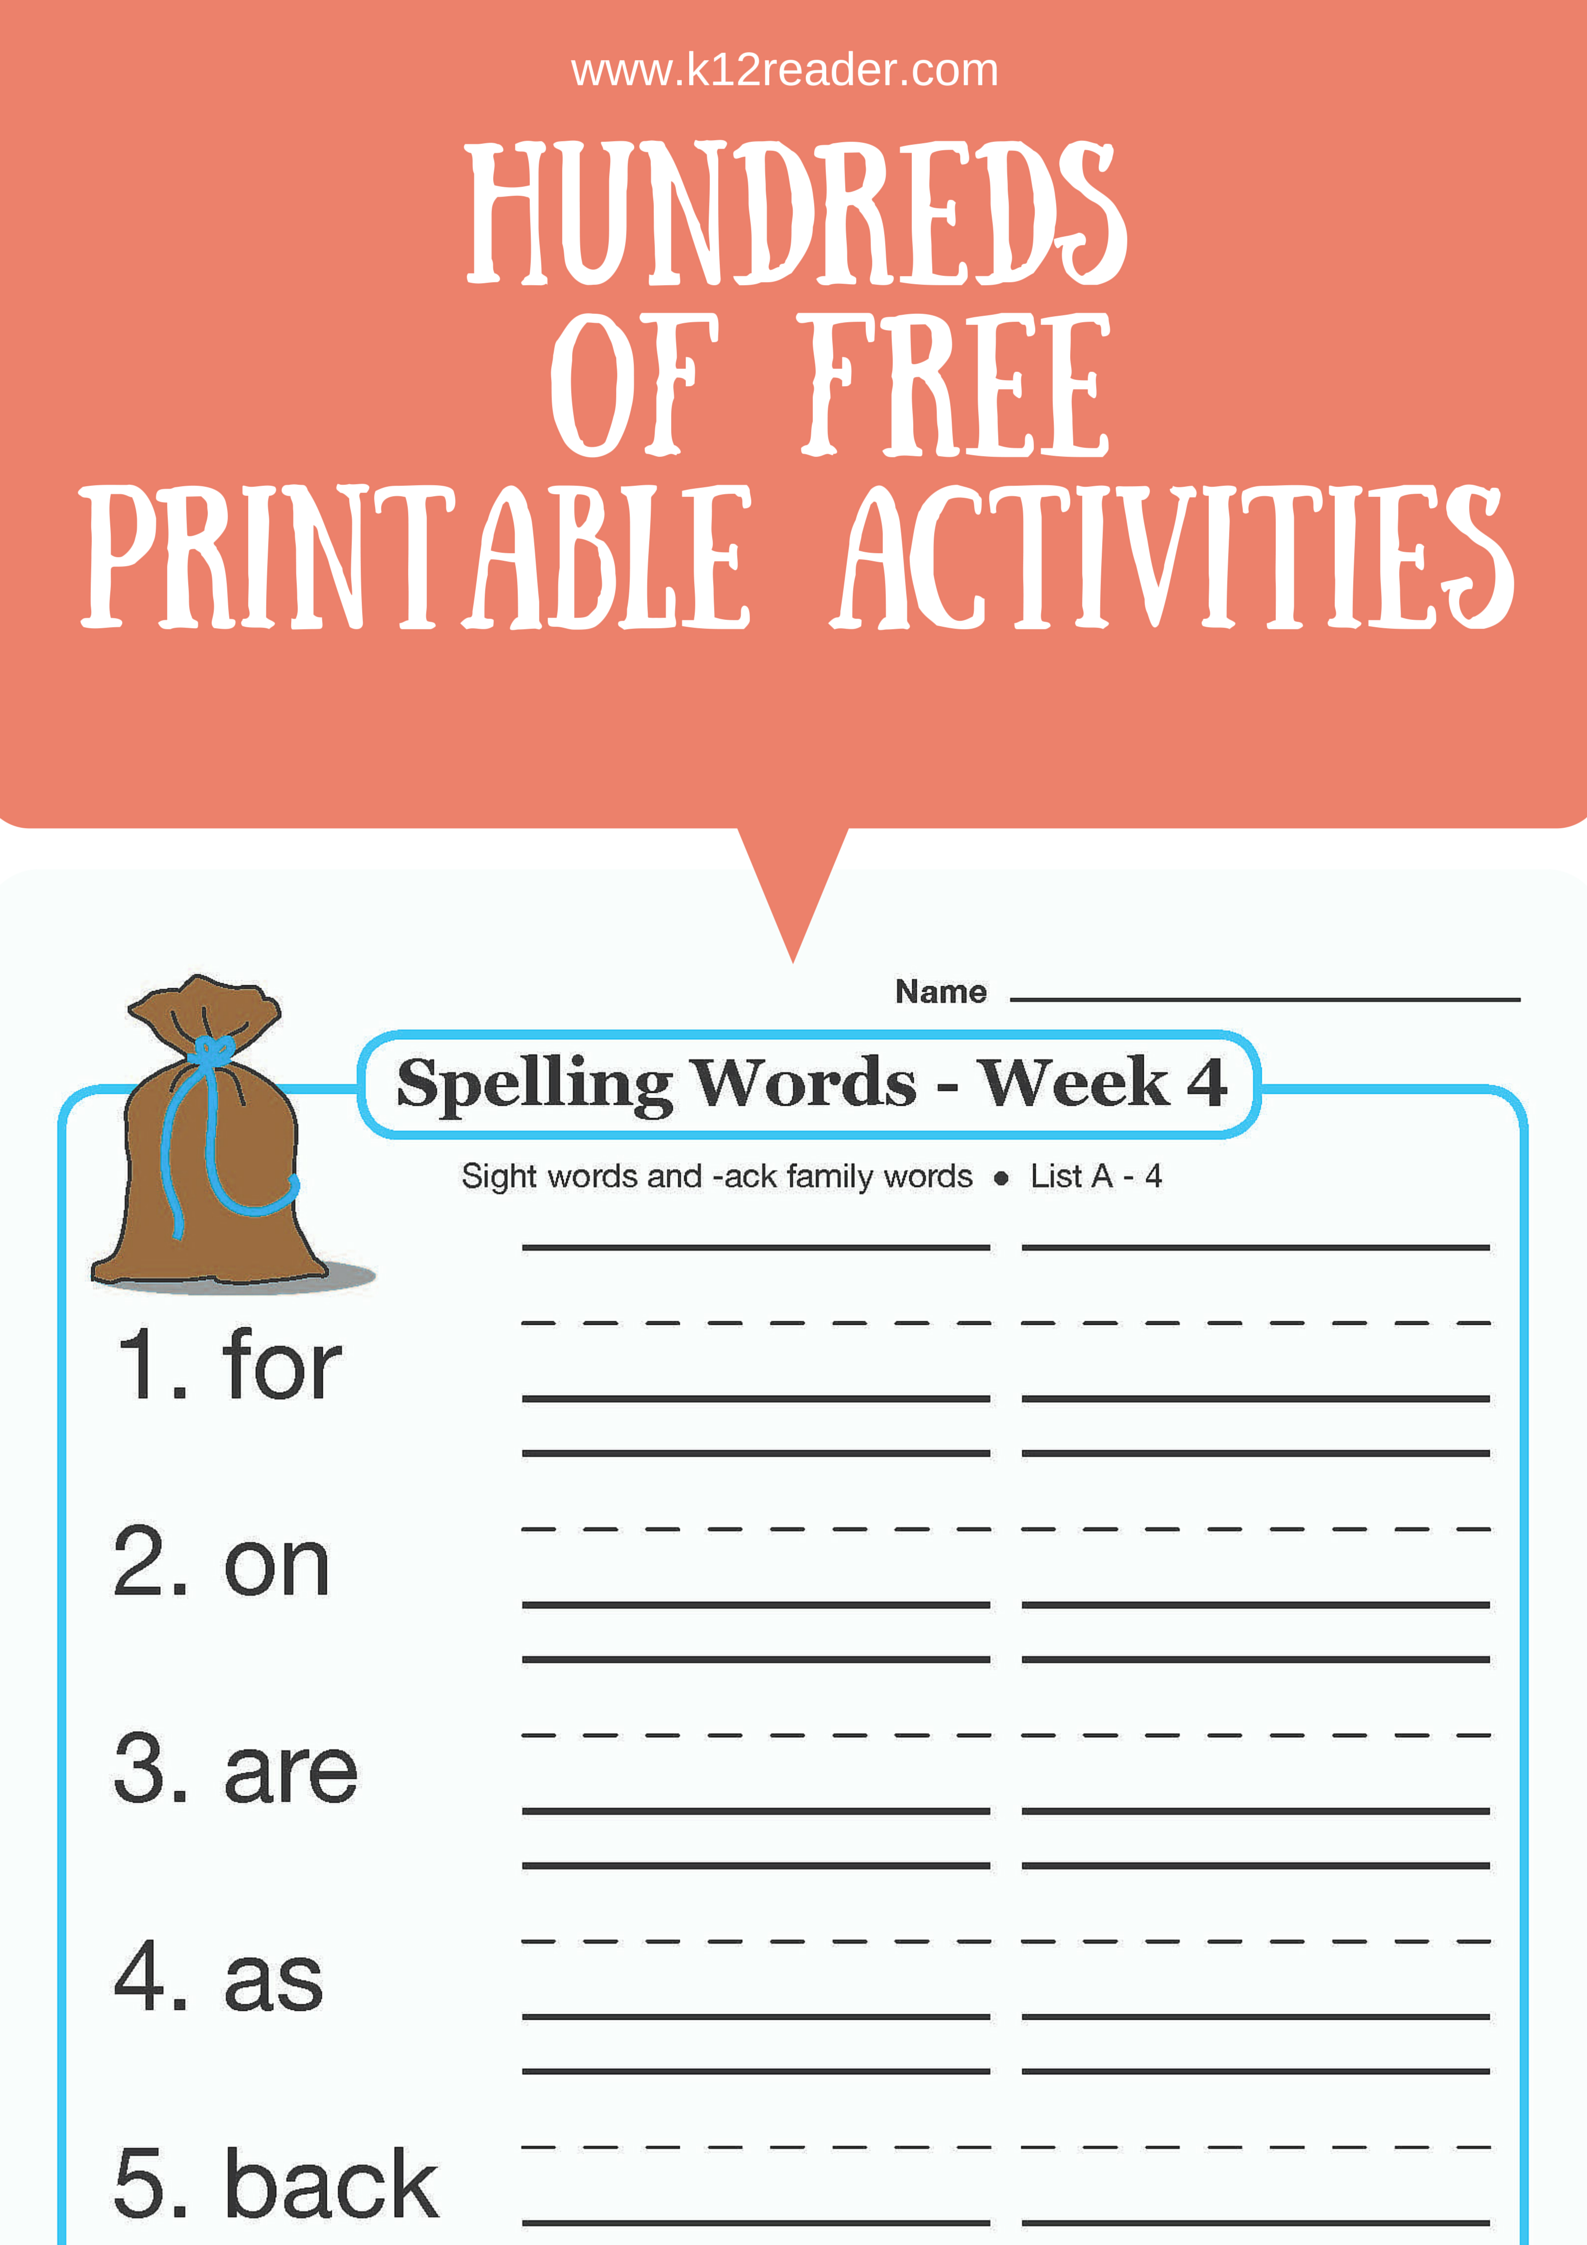 Find Hundreds Of Free Printable Learning Materials On